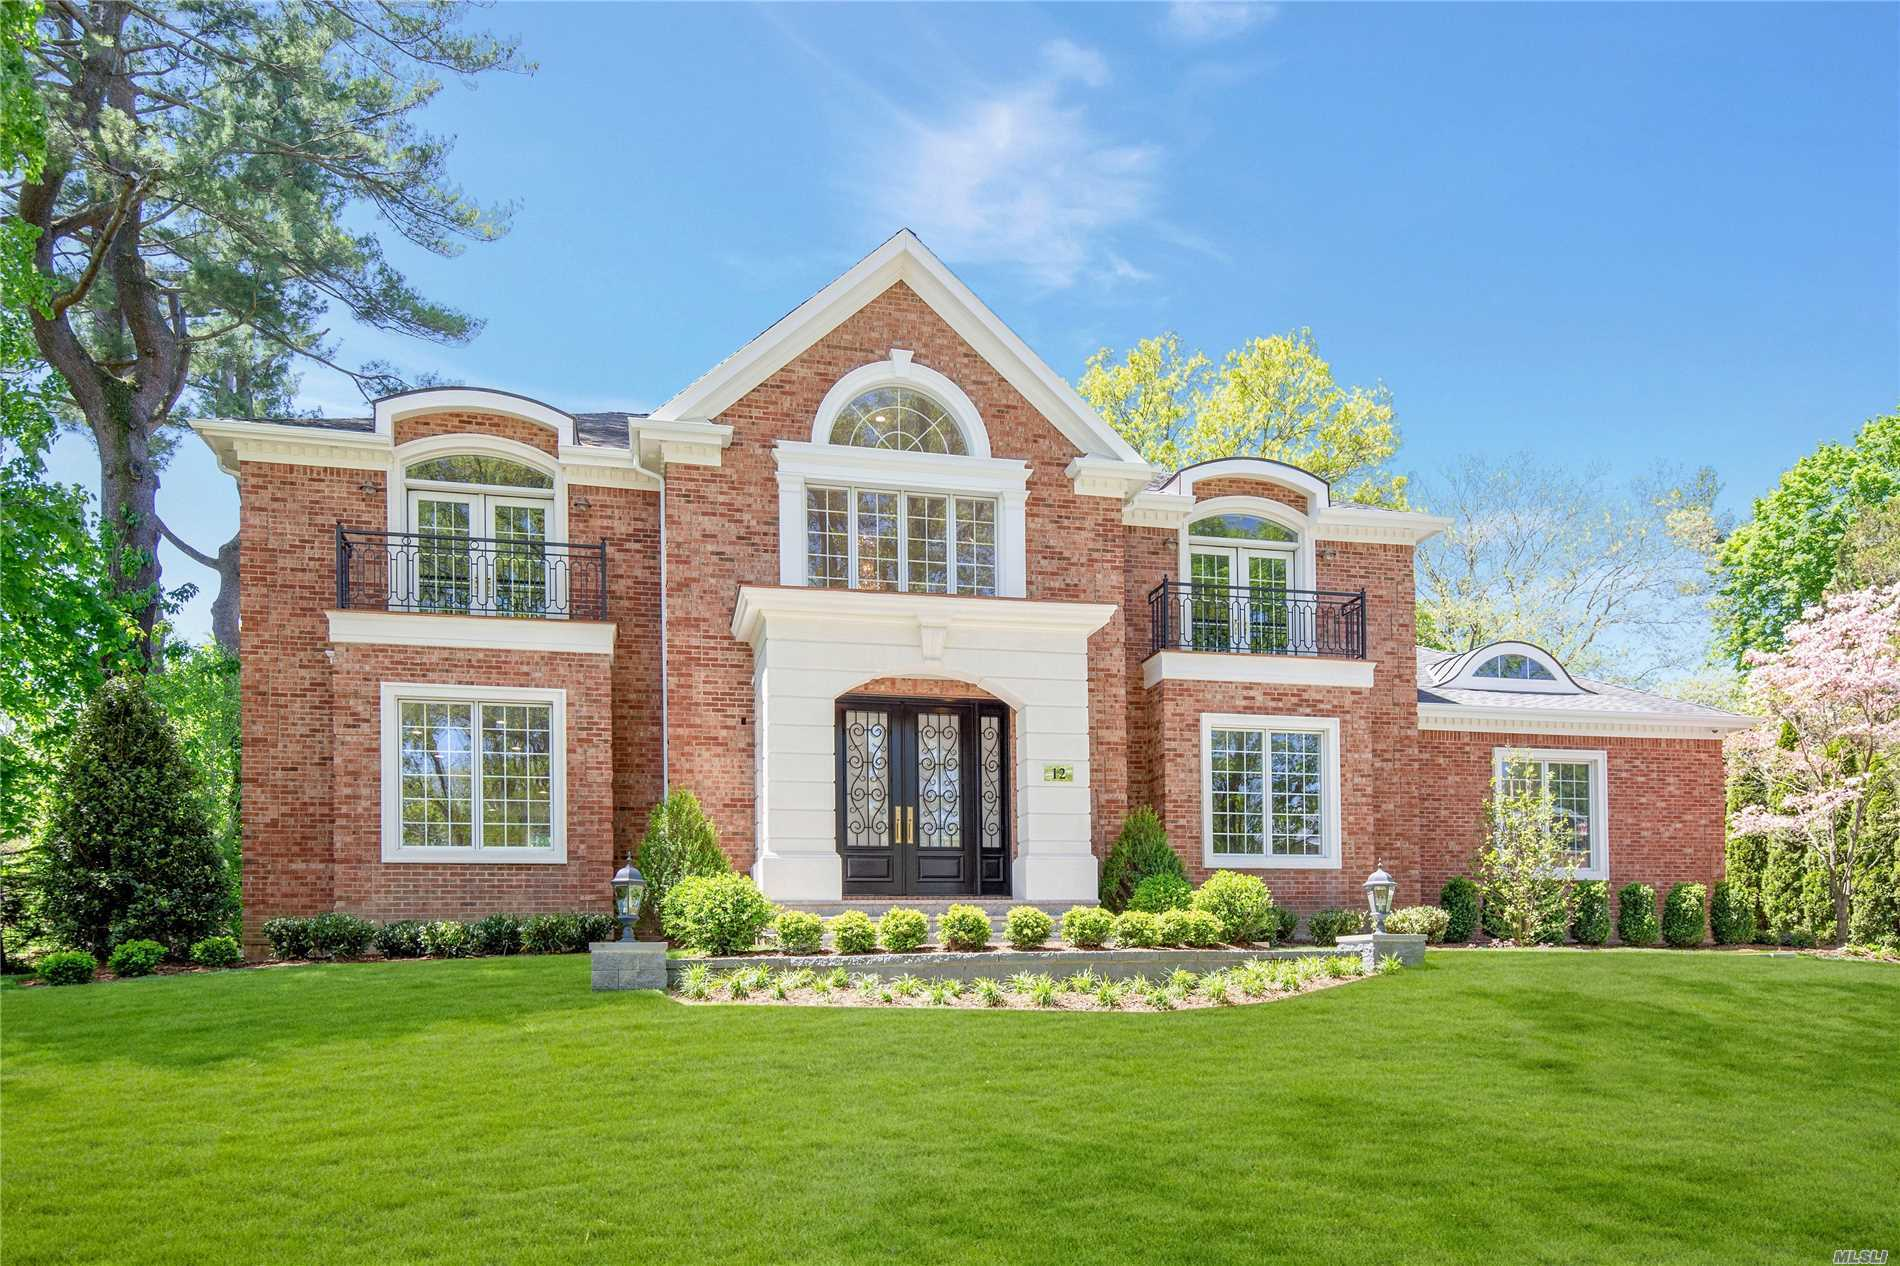 Welcome to this Gold Coast Grandeur! New to the market in the heart of Country Club. Built by Matisse Development Group. Palatial, elegant, extraordinary 5, 700 sqft. brick Colonial, 5 Br, 6.5 Baths, state-of-the-art gourmet kitchen with top-of-the-line appliances, radiant heat throughout foyer, powder Room & kitchen, open floor plan, quality craftsmanship throughout, set on exquisitely landscaped property. Renowned Wheatley/East Williston School District.